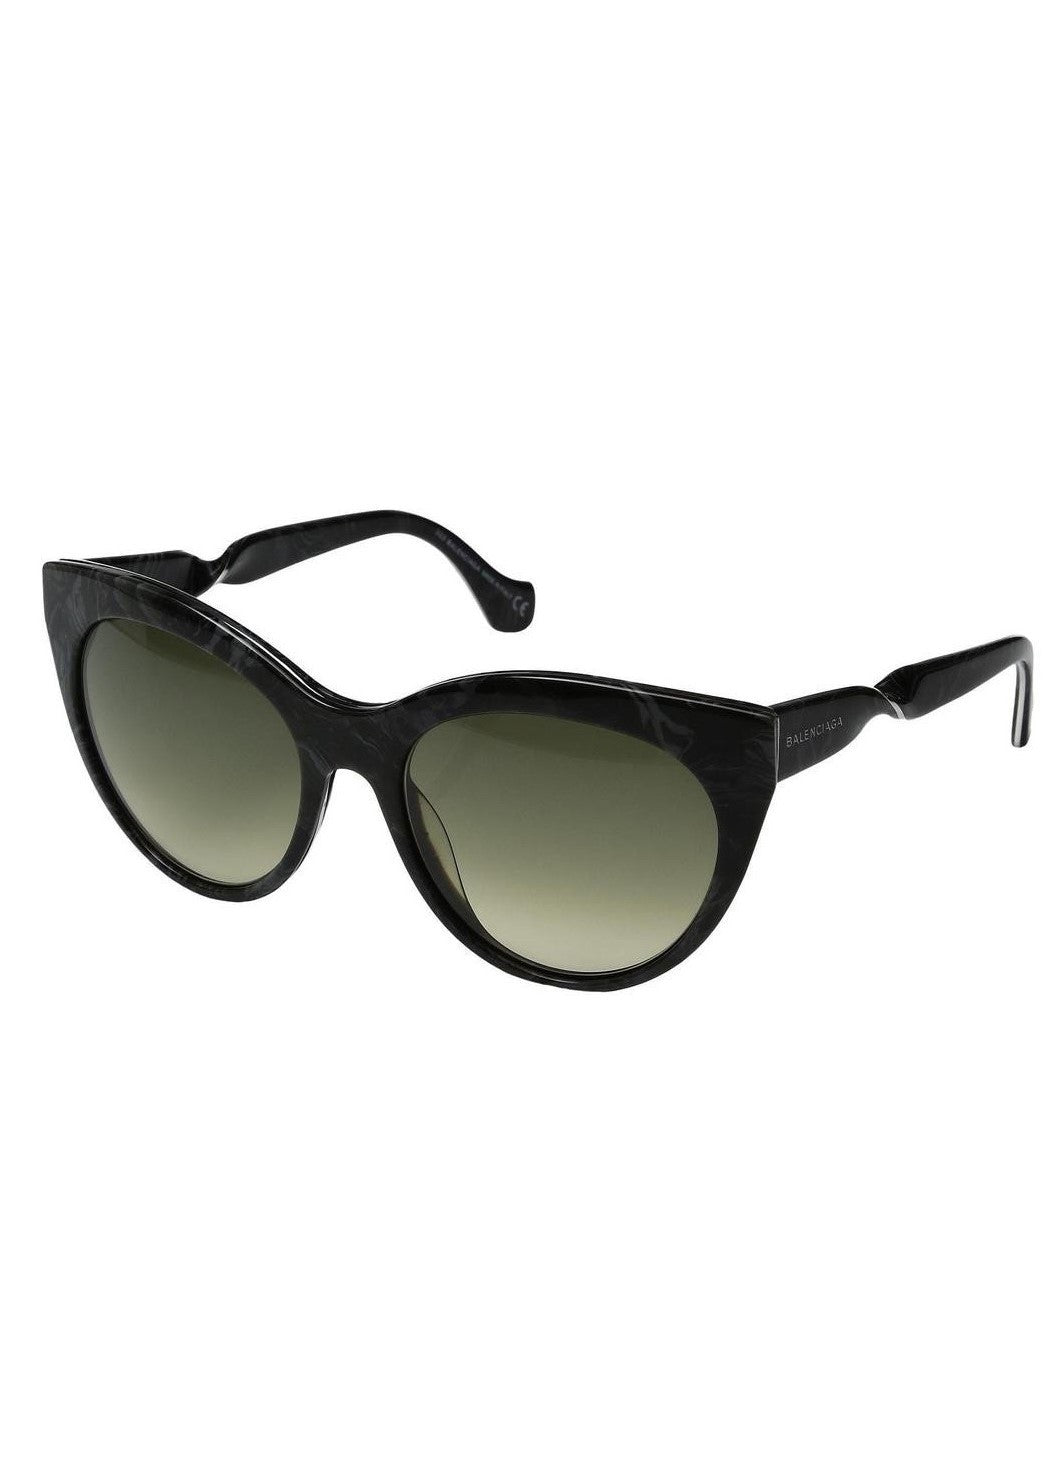 Balenciaga cat eye twisted sunglasses black